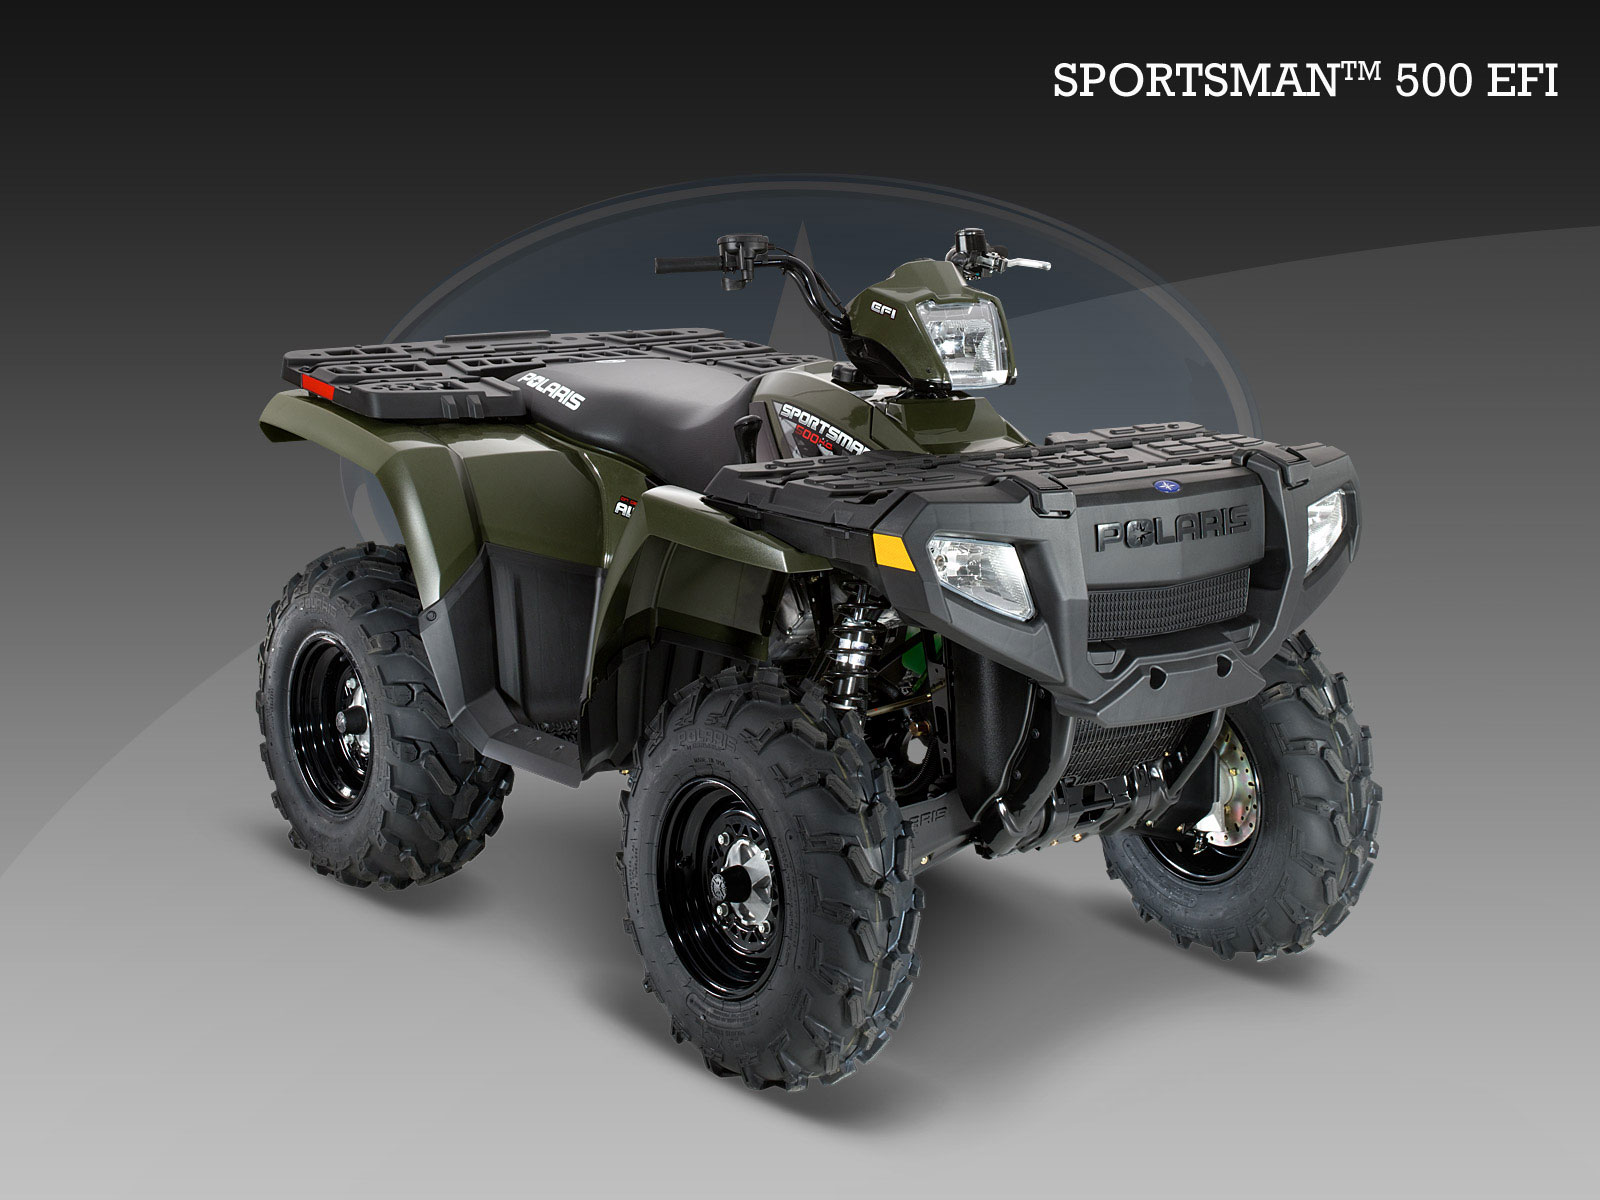 2009 polaris sportsman 500 efi. Black Bedroom Furniture Sets. Home Design Ideas